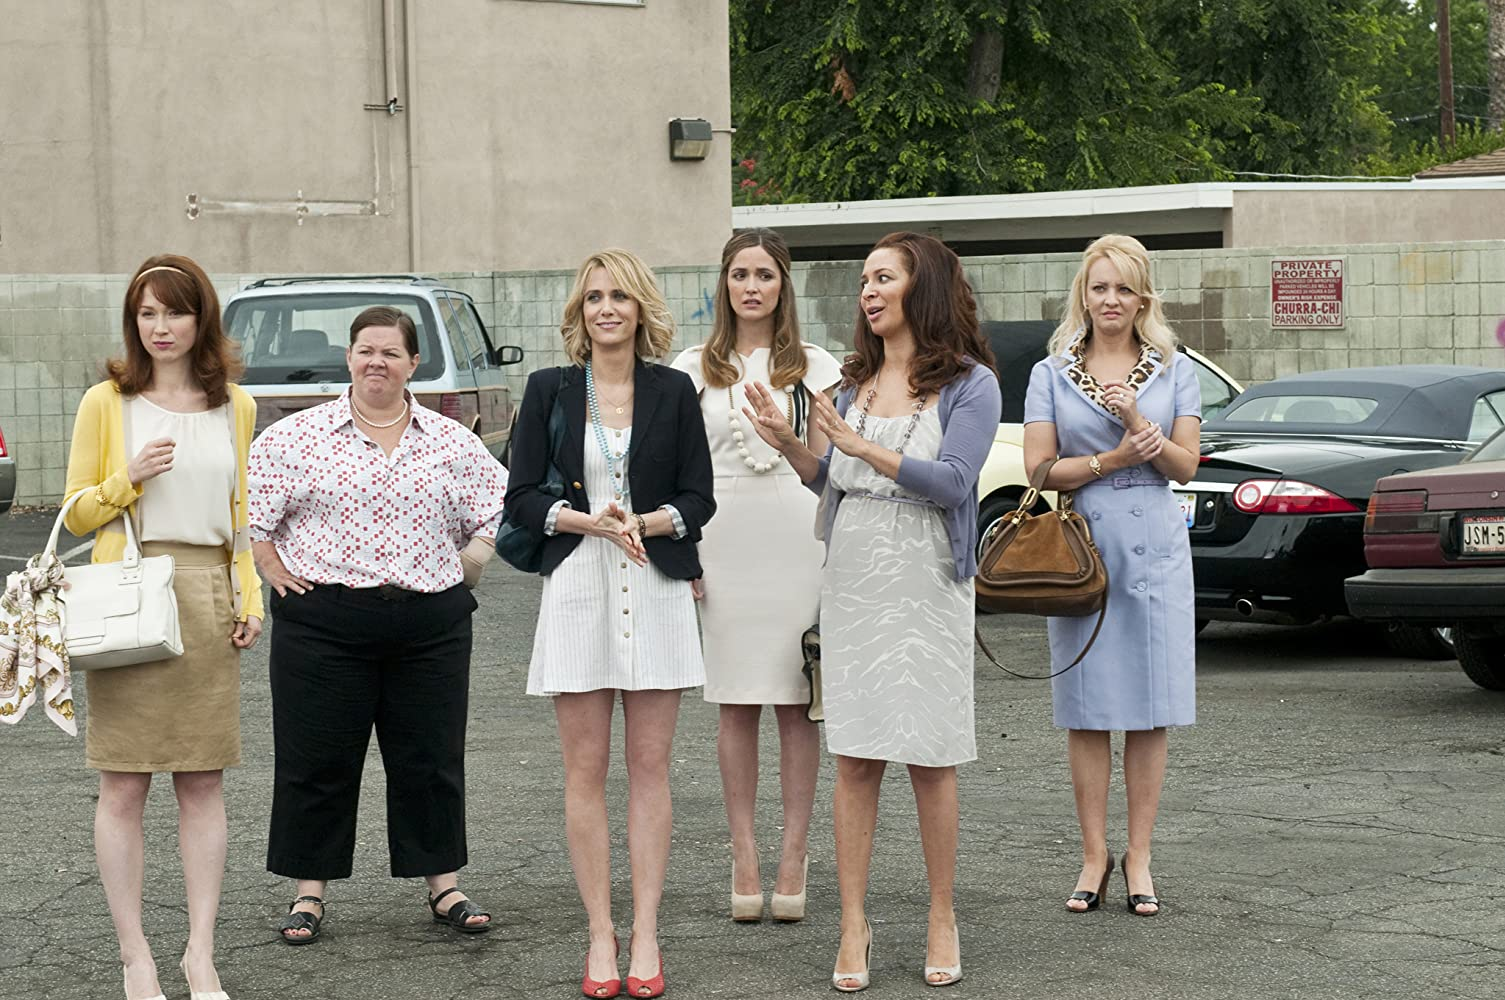 Rose Byrne, Melissa McCarthy, Maya Rudolph, Wendi McLendon-Covey, Kristen Wiig, and Ellie Kemper in Bridesmaids (2011)